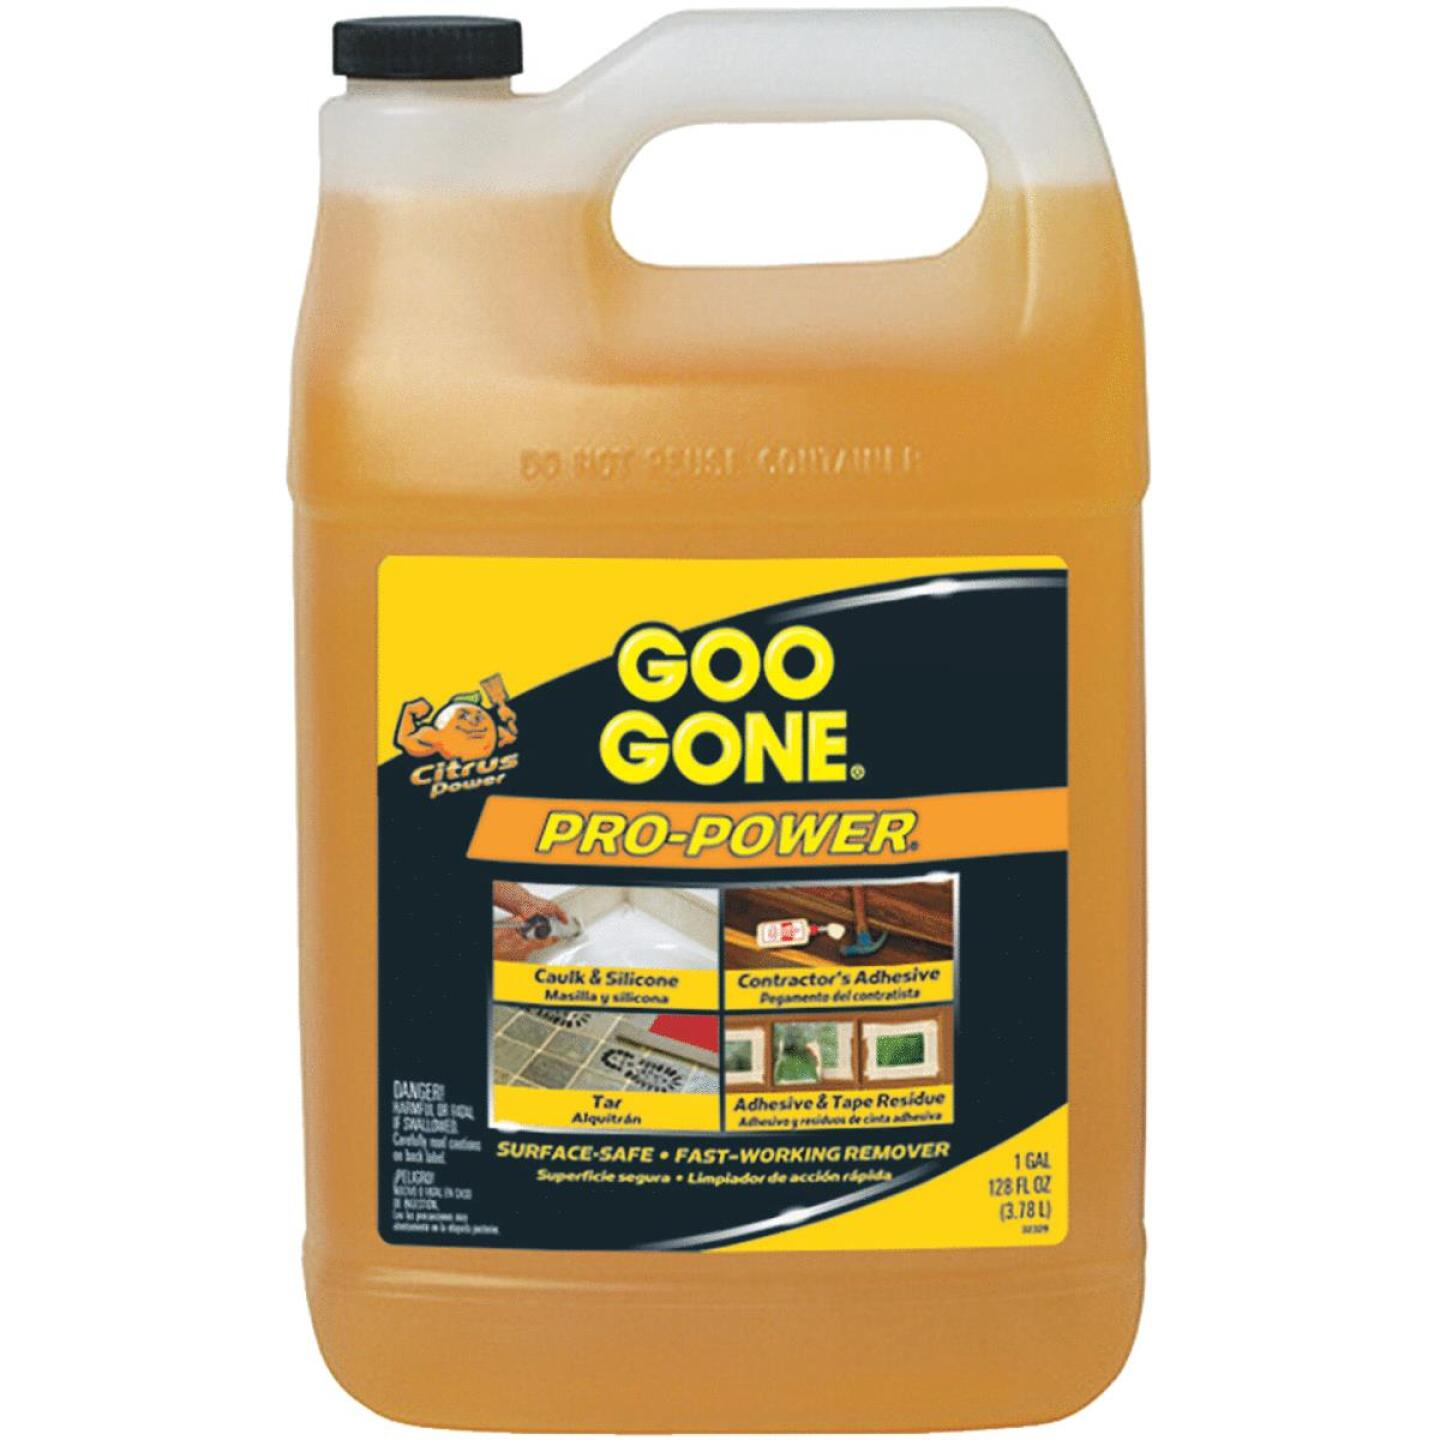 Goo Gone 1 Gal. Pro-Power Adhesive Remover Image 81